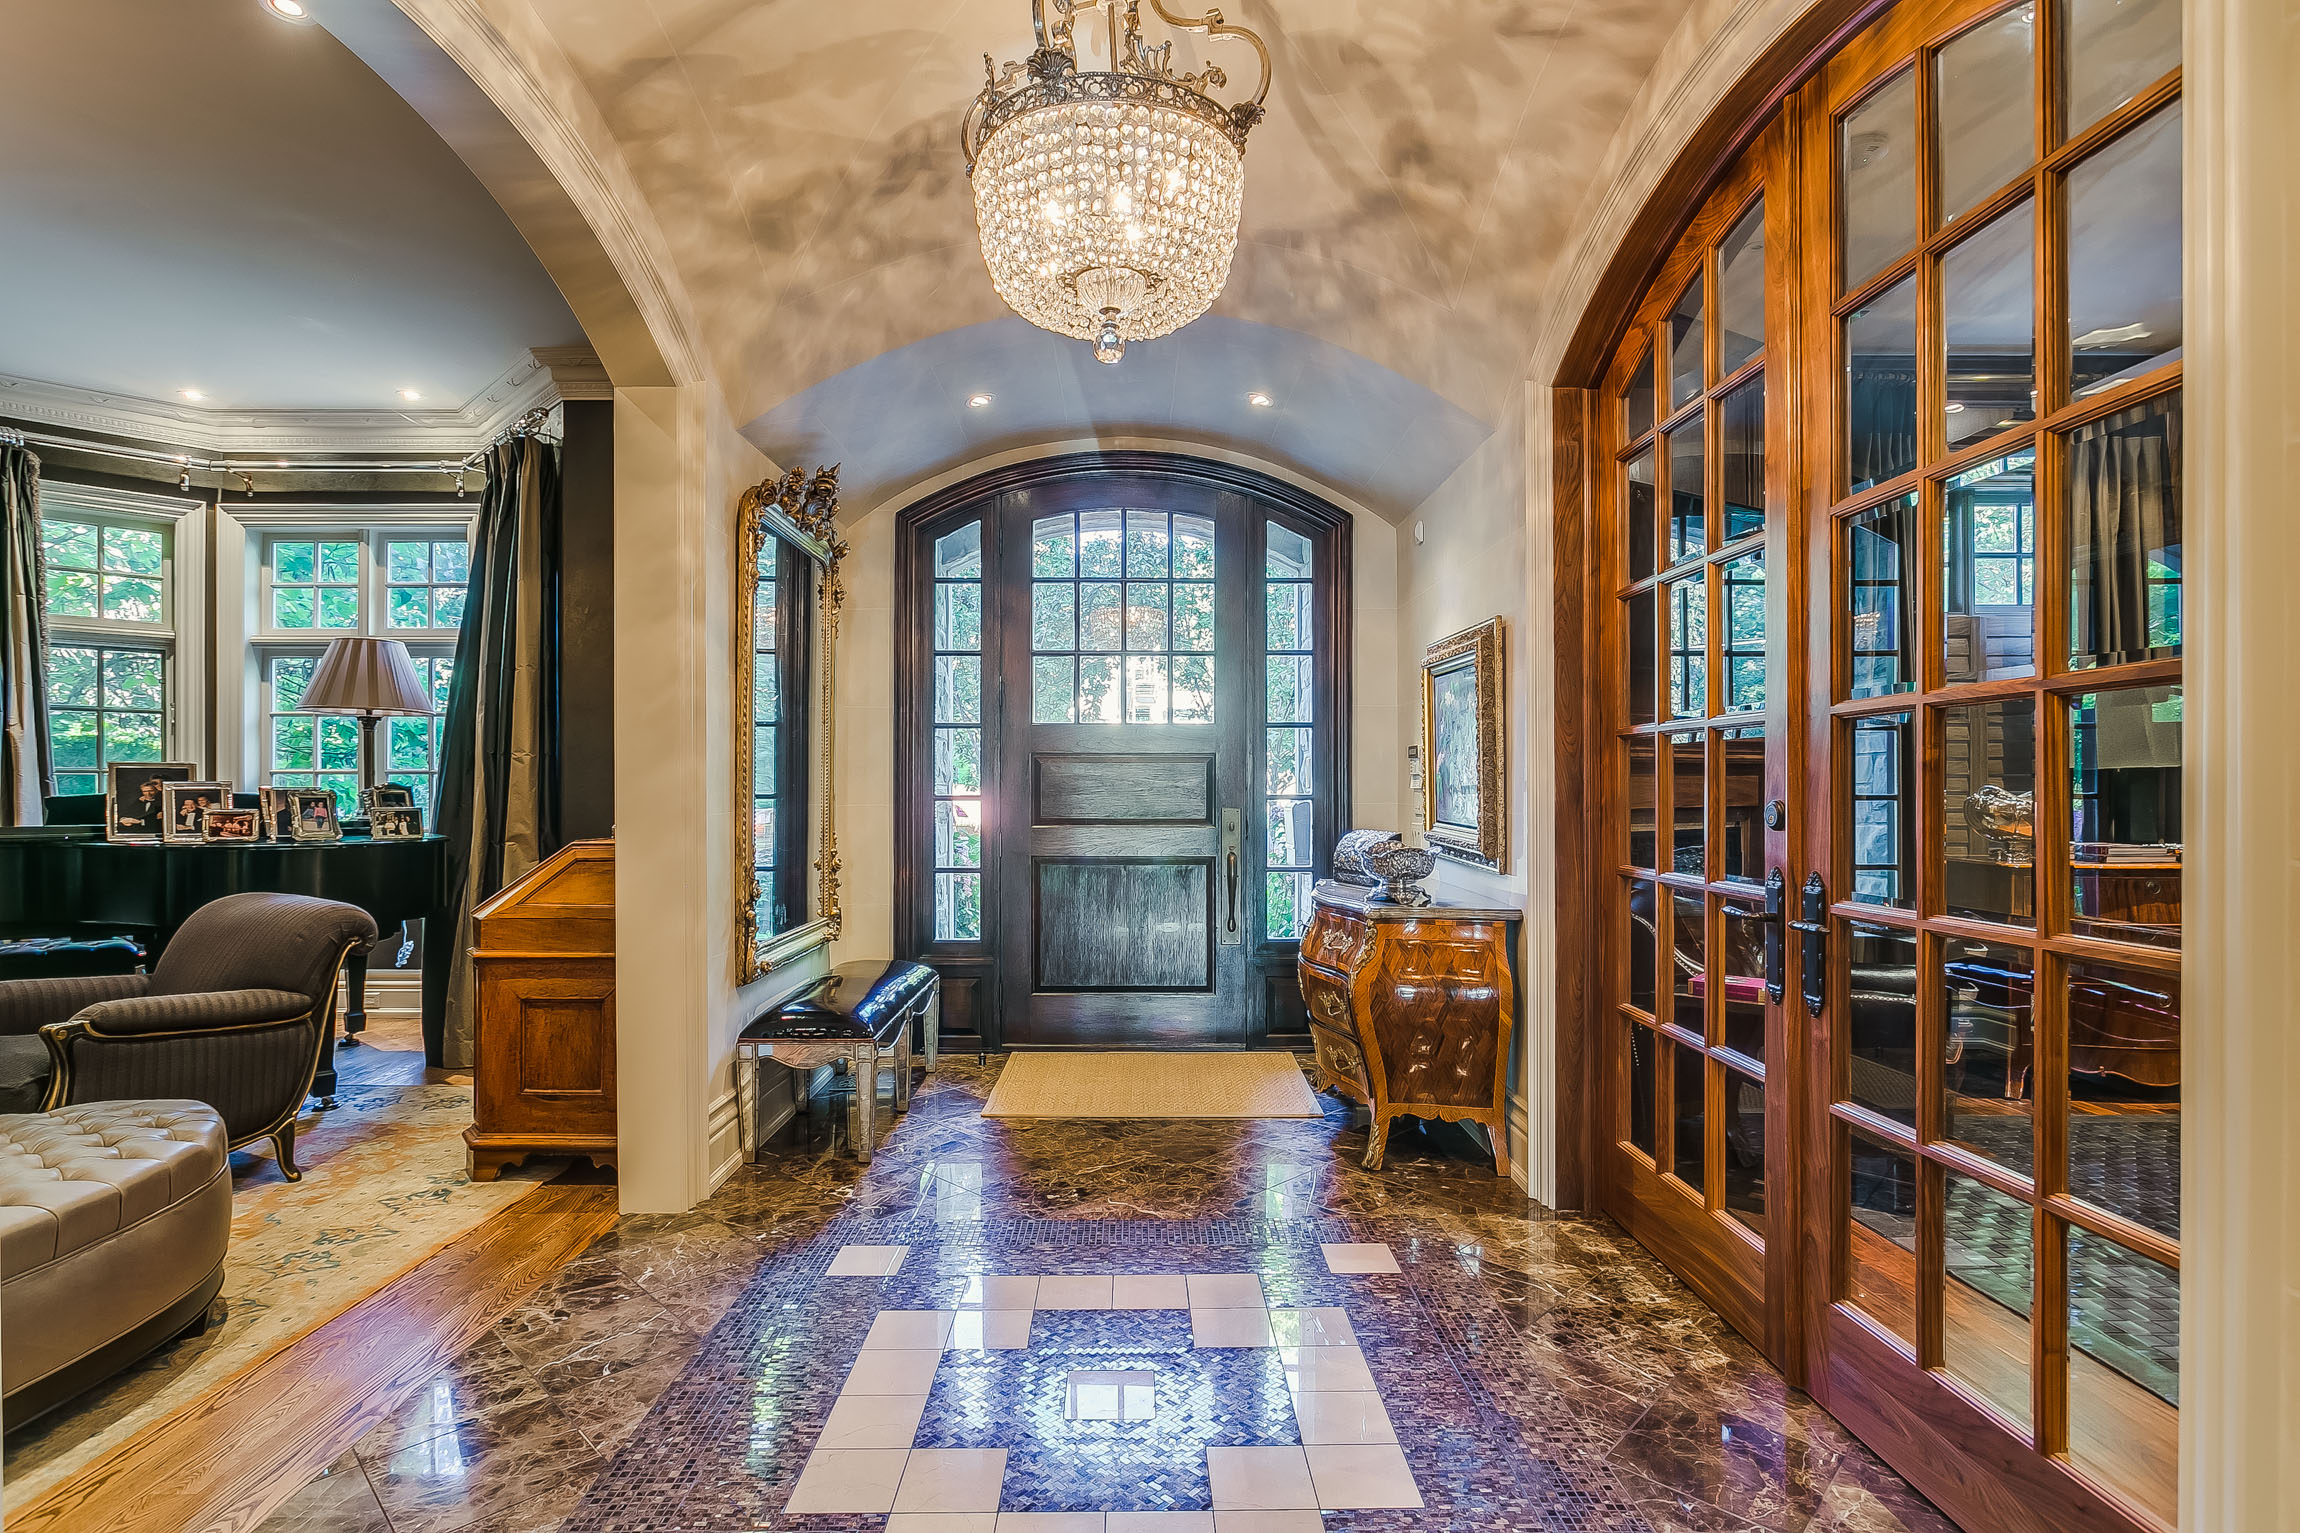 The Foyer - From The Pristine Front Walkway, There Is An Immediate Sense of Grandeur and Warmth, Upon Entering Into The Marble Lined Foyer. To Describe The Detail and Beauty of This Home Is Unjustified Until One Has The Opportunity To Experience For Themselves.